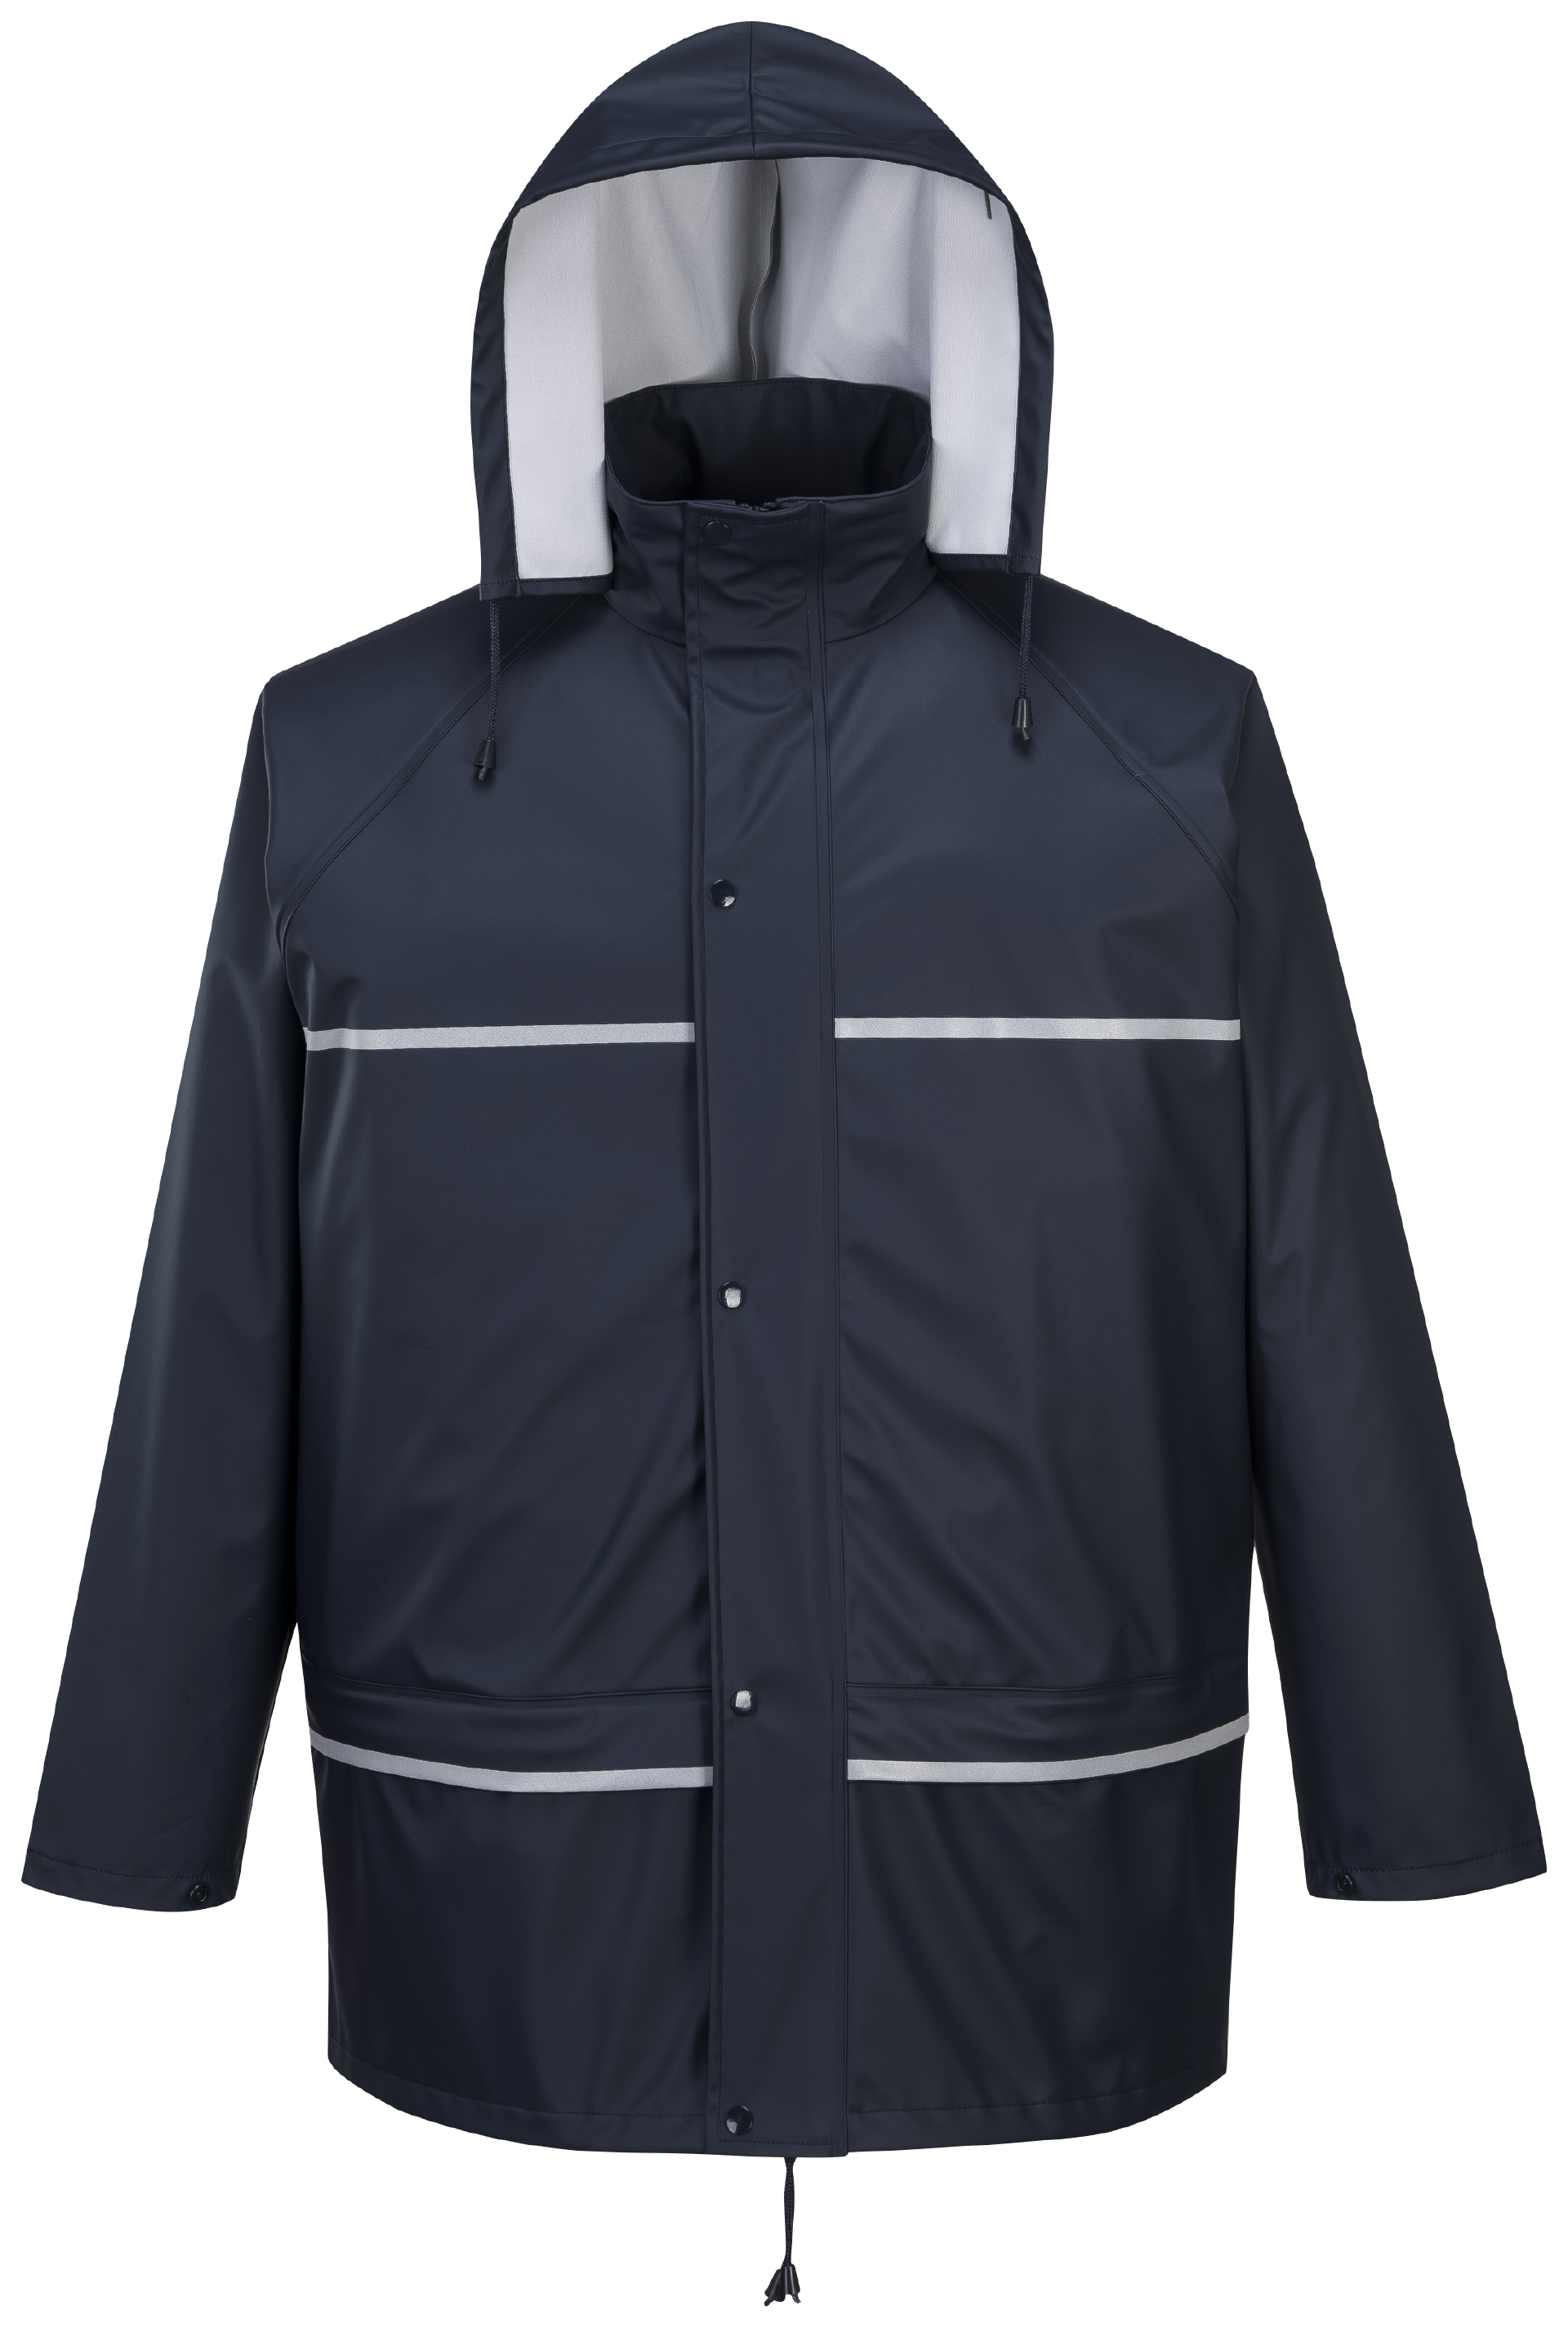 EN20471 SAFETY RAINCOAT